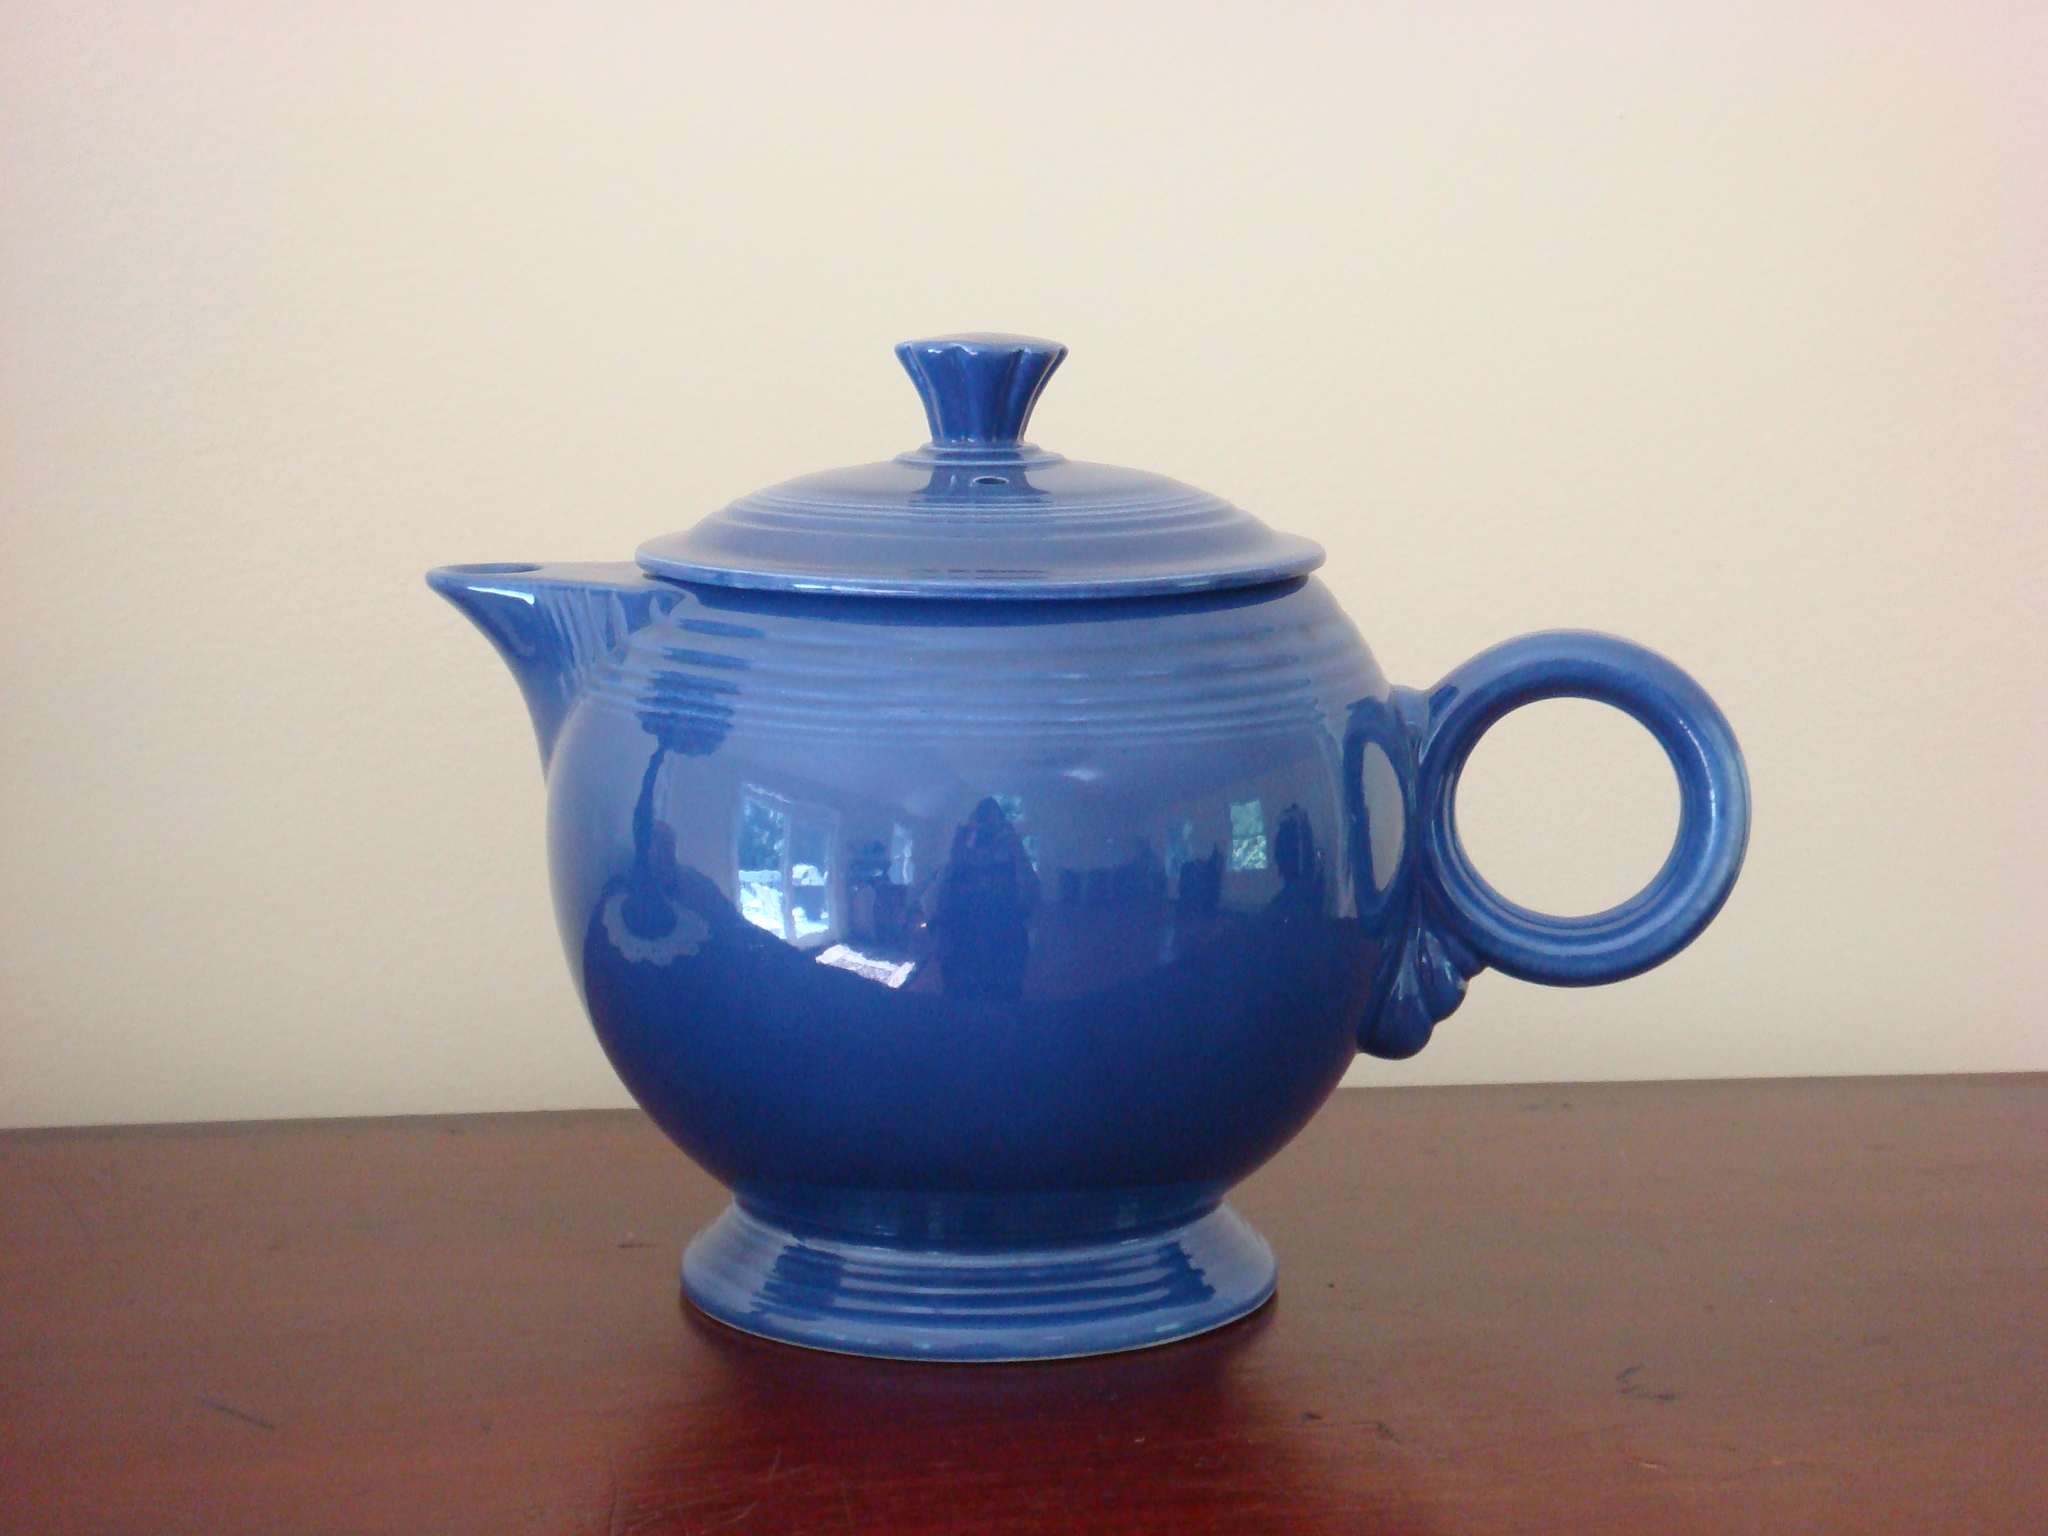 lovely teapot in blue by fiestaware for drinkware ideas